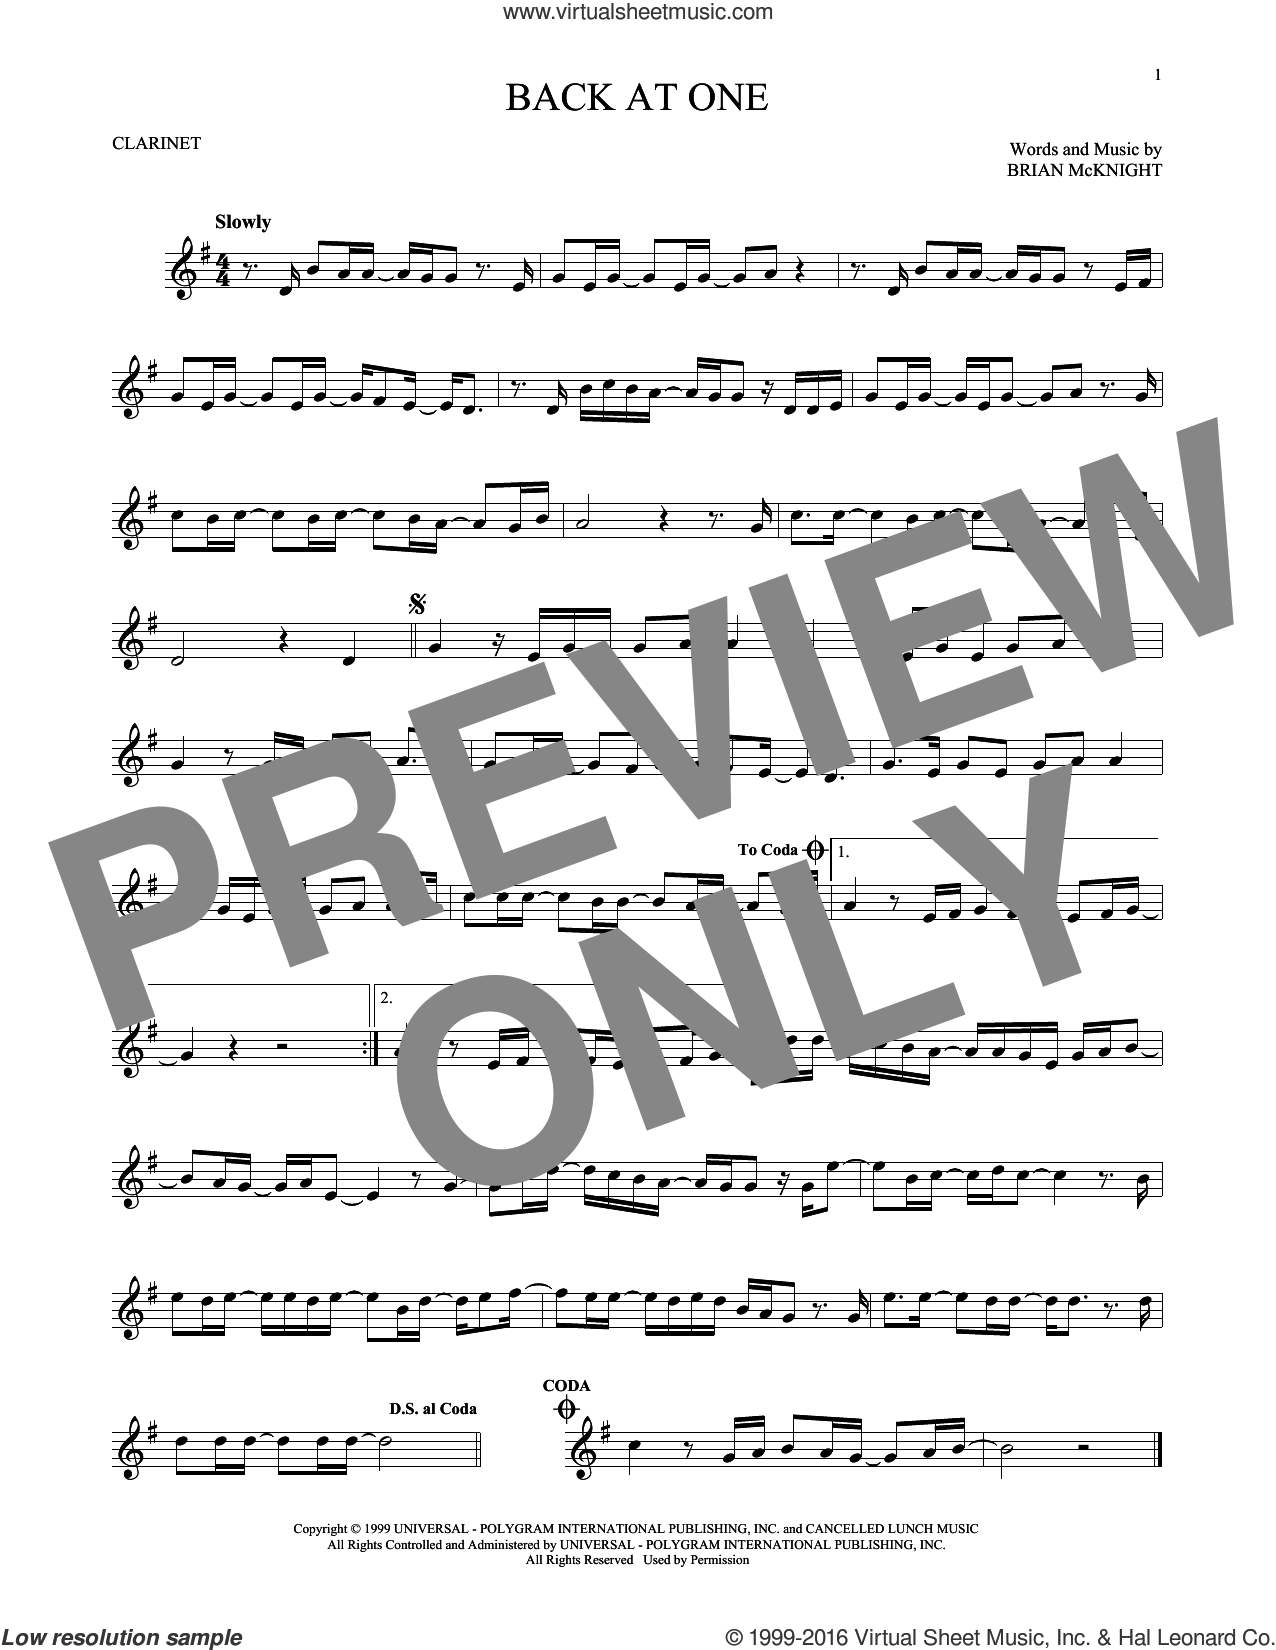 Back At One sheet music for clarinet solo by Brian McKnight, intermediate skill level